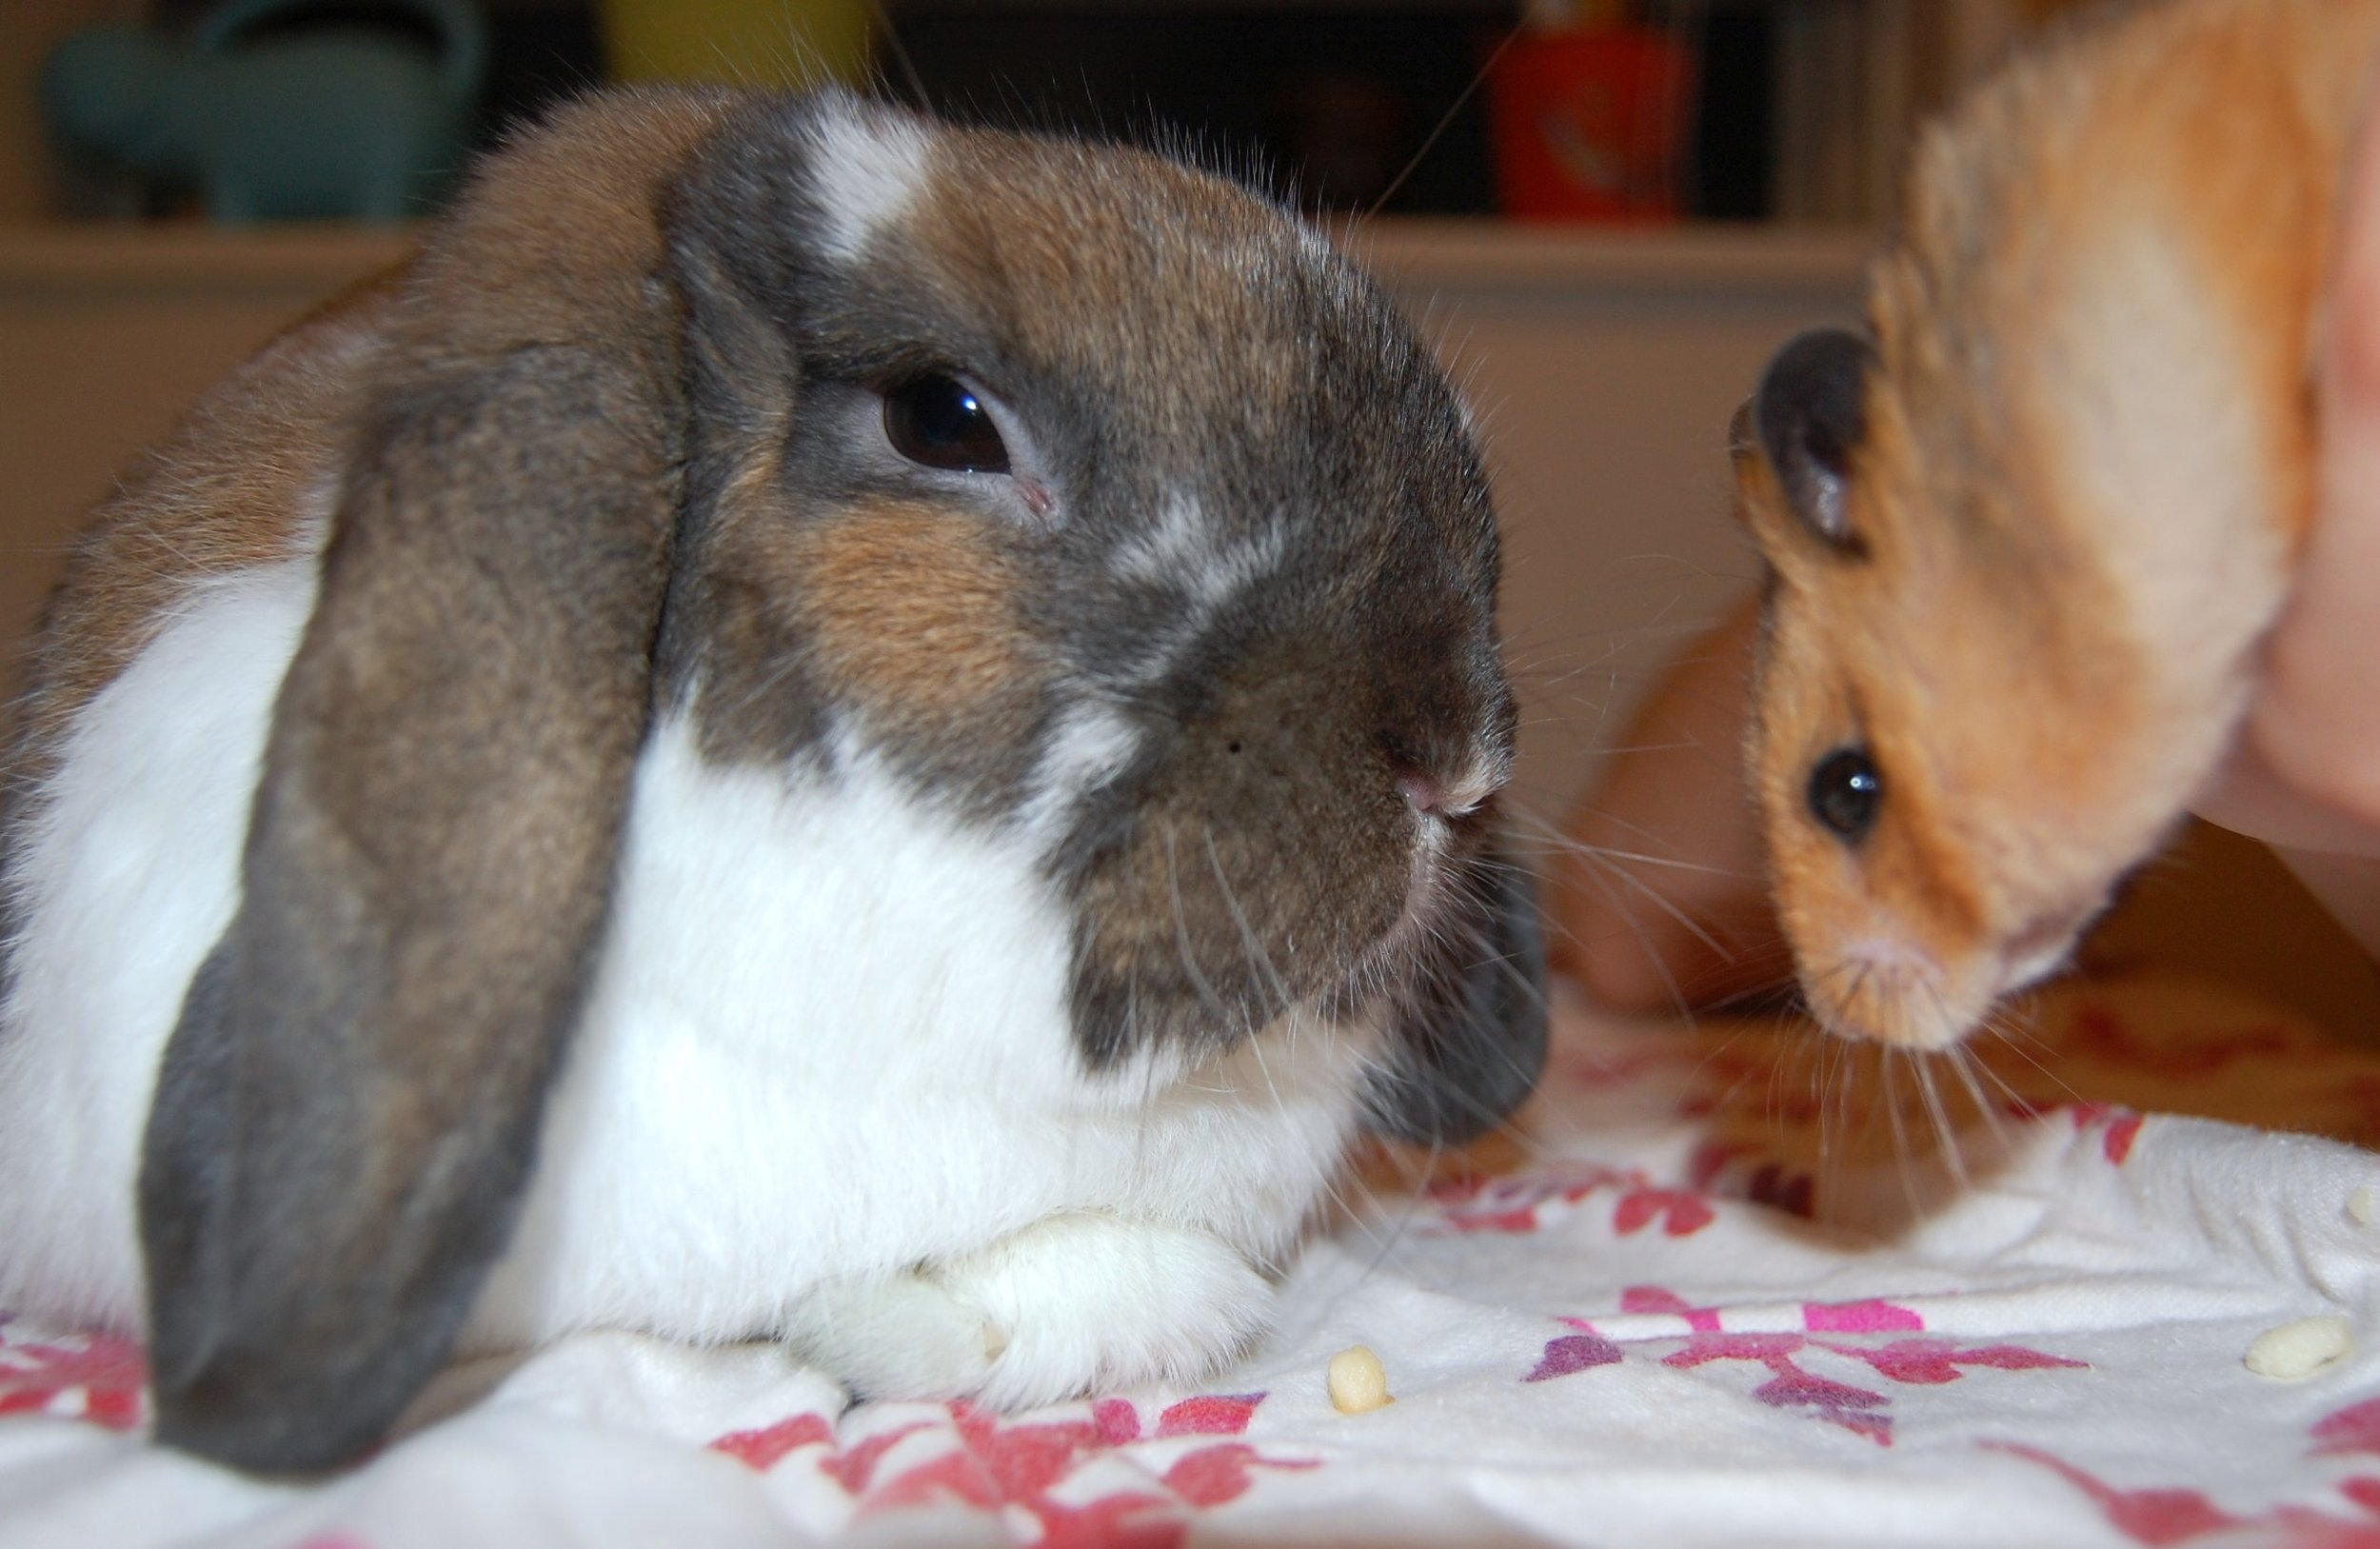 It Is Hard Getting Bunny and Hamster to Take a Nice Photo Together 4